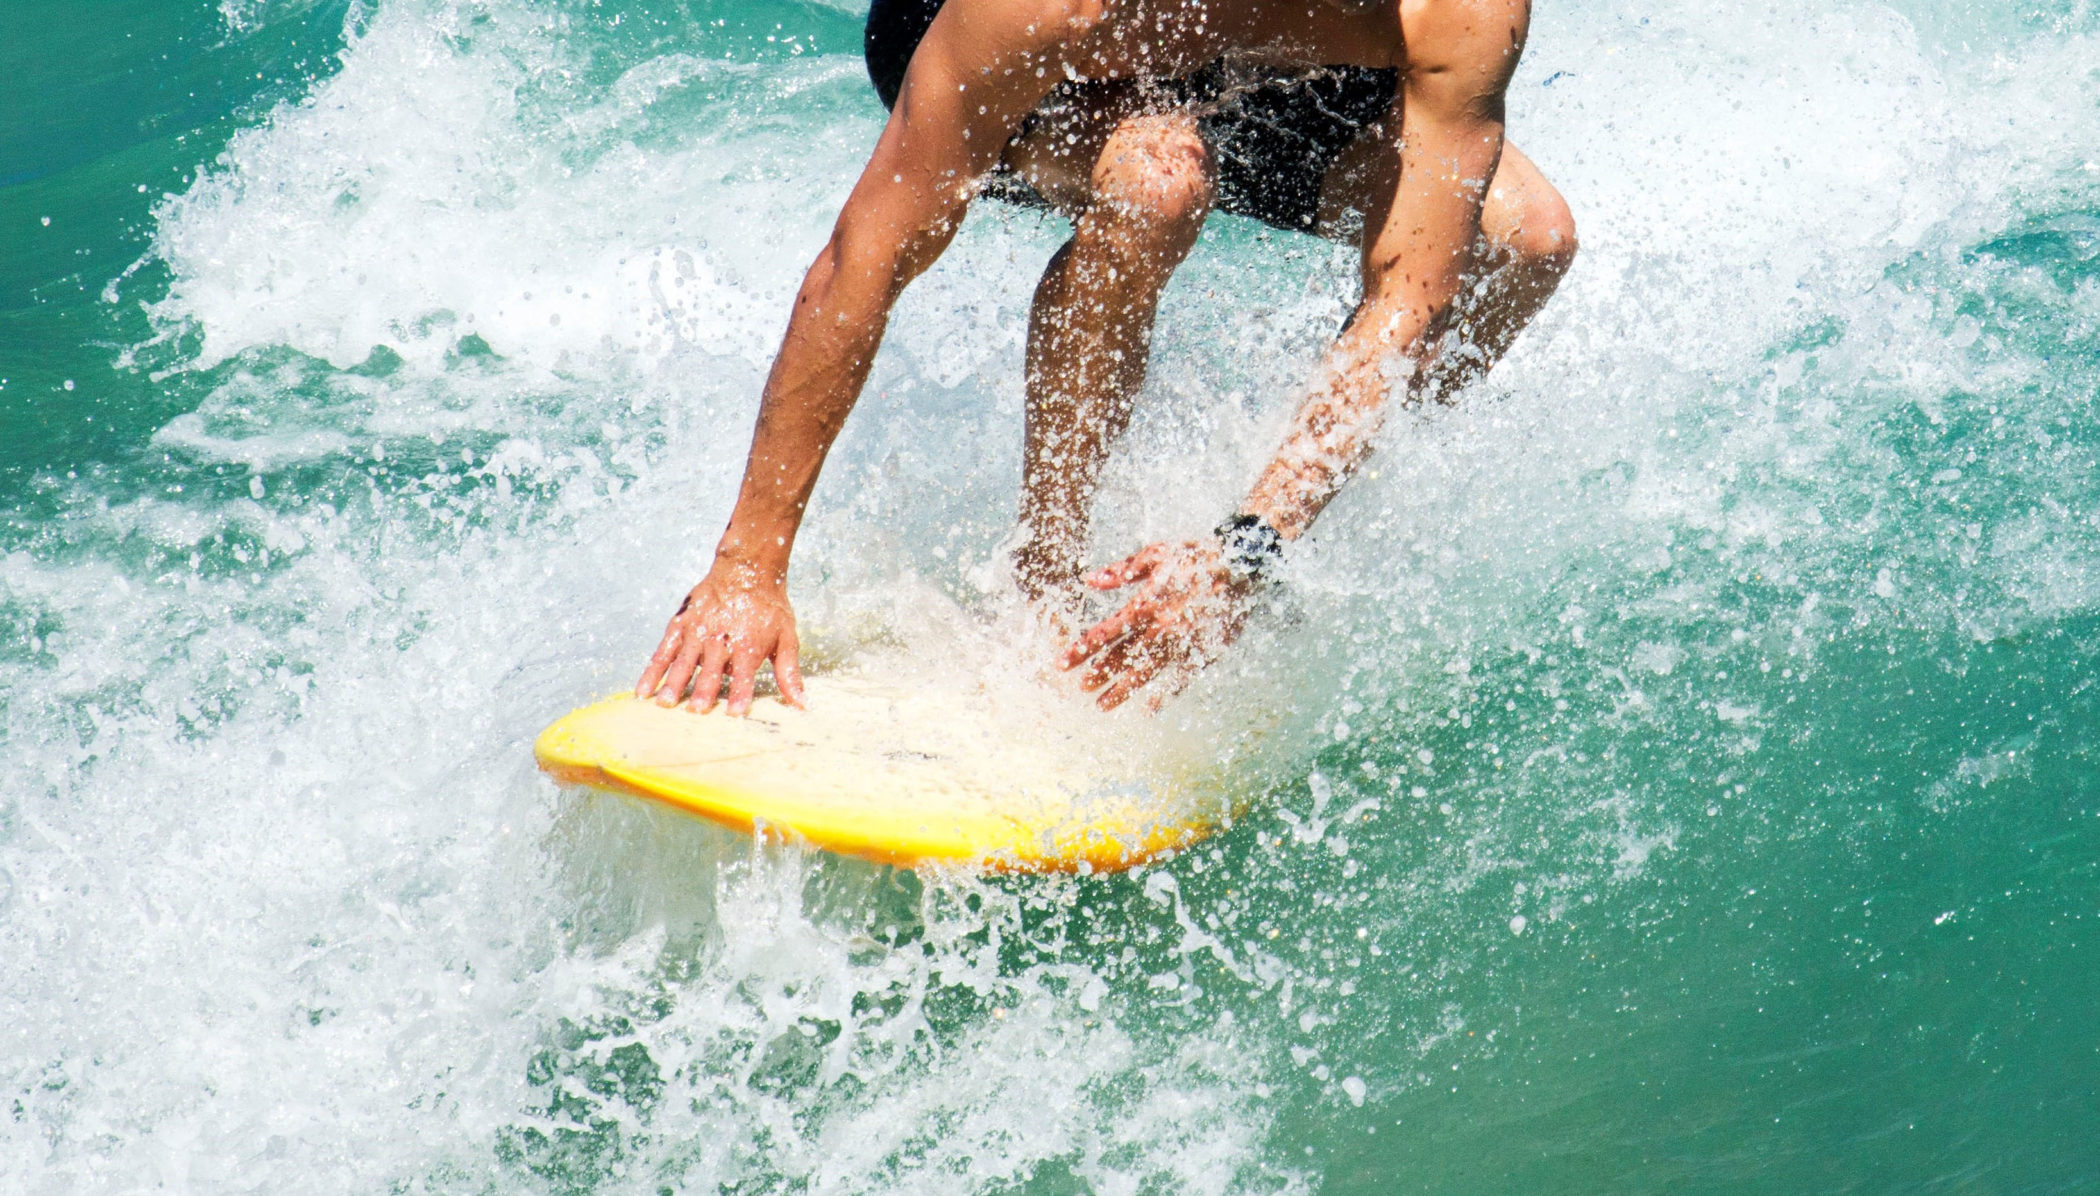 A man staying low on his board while surfing